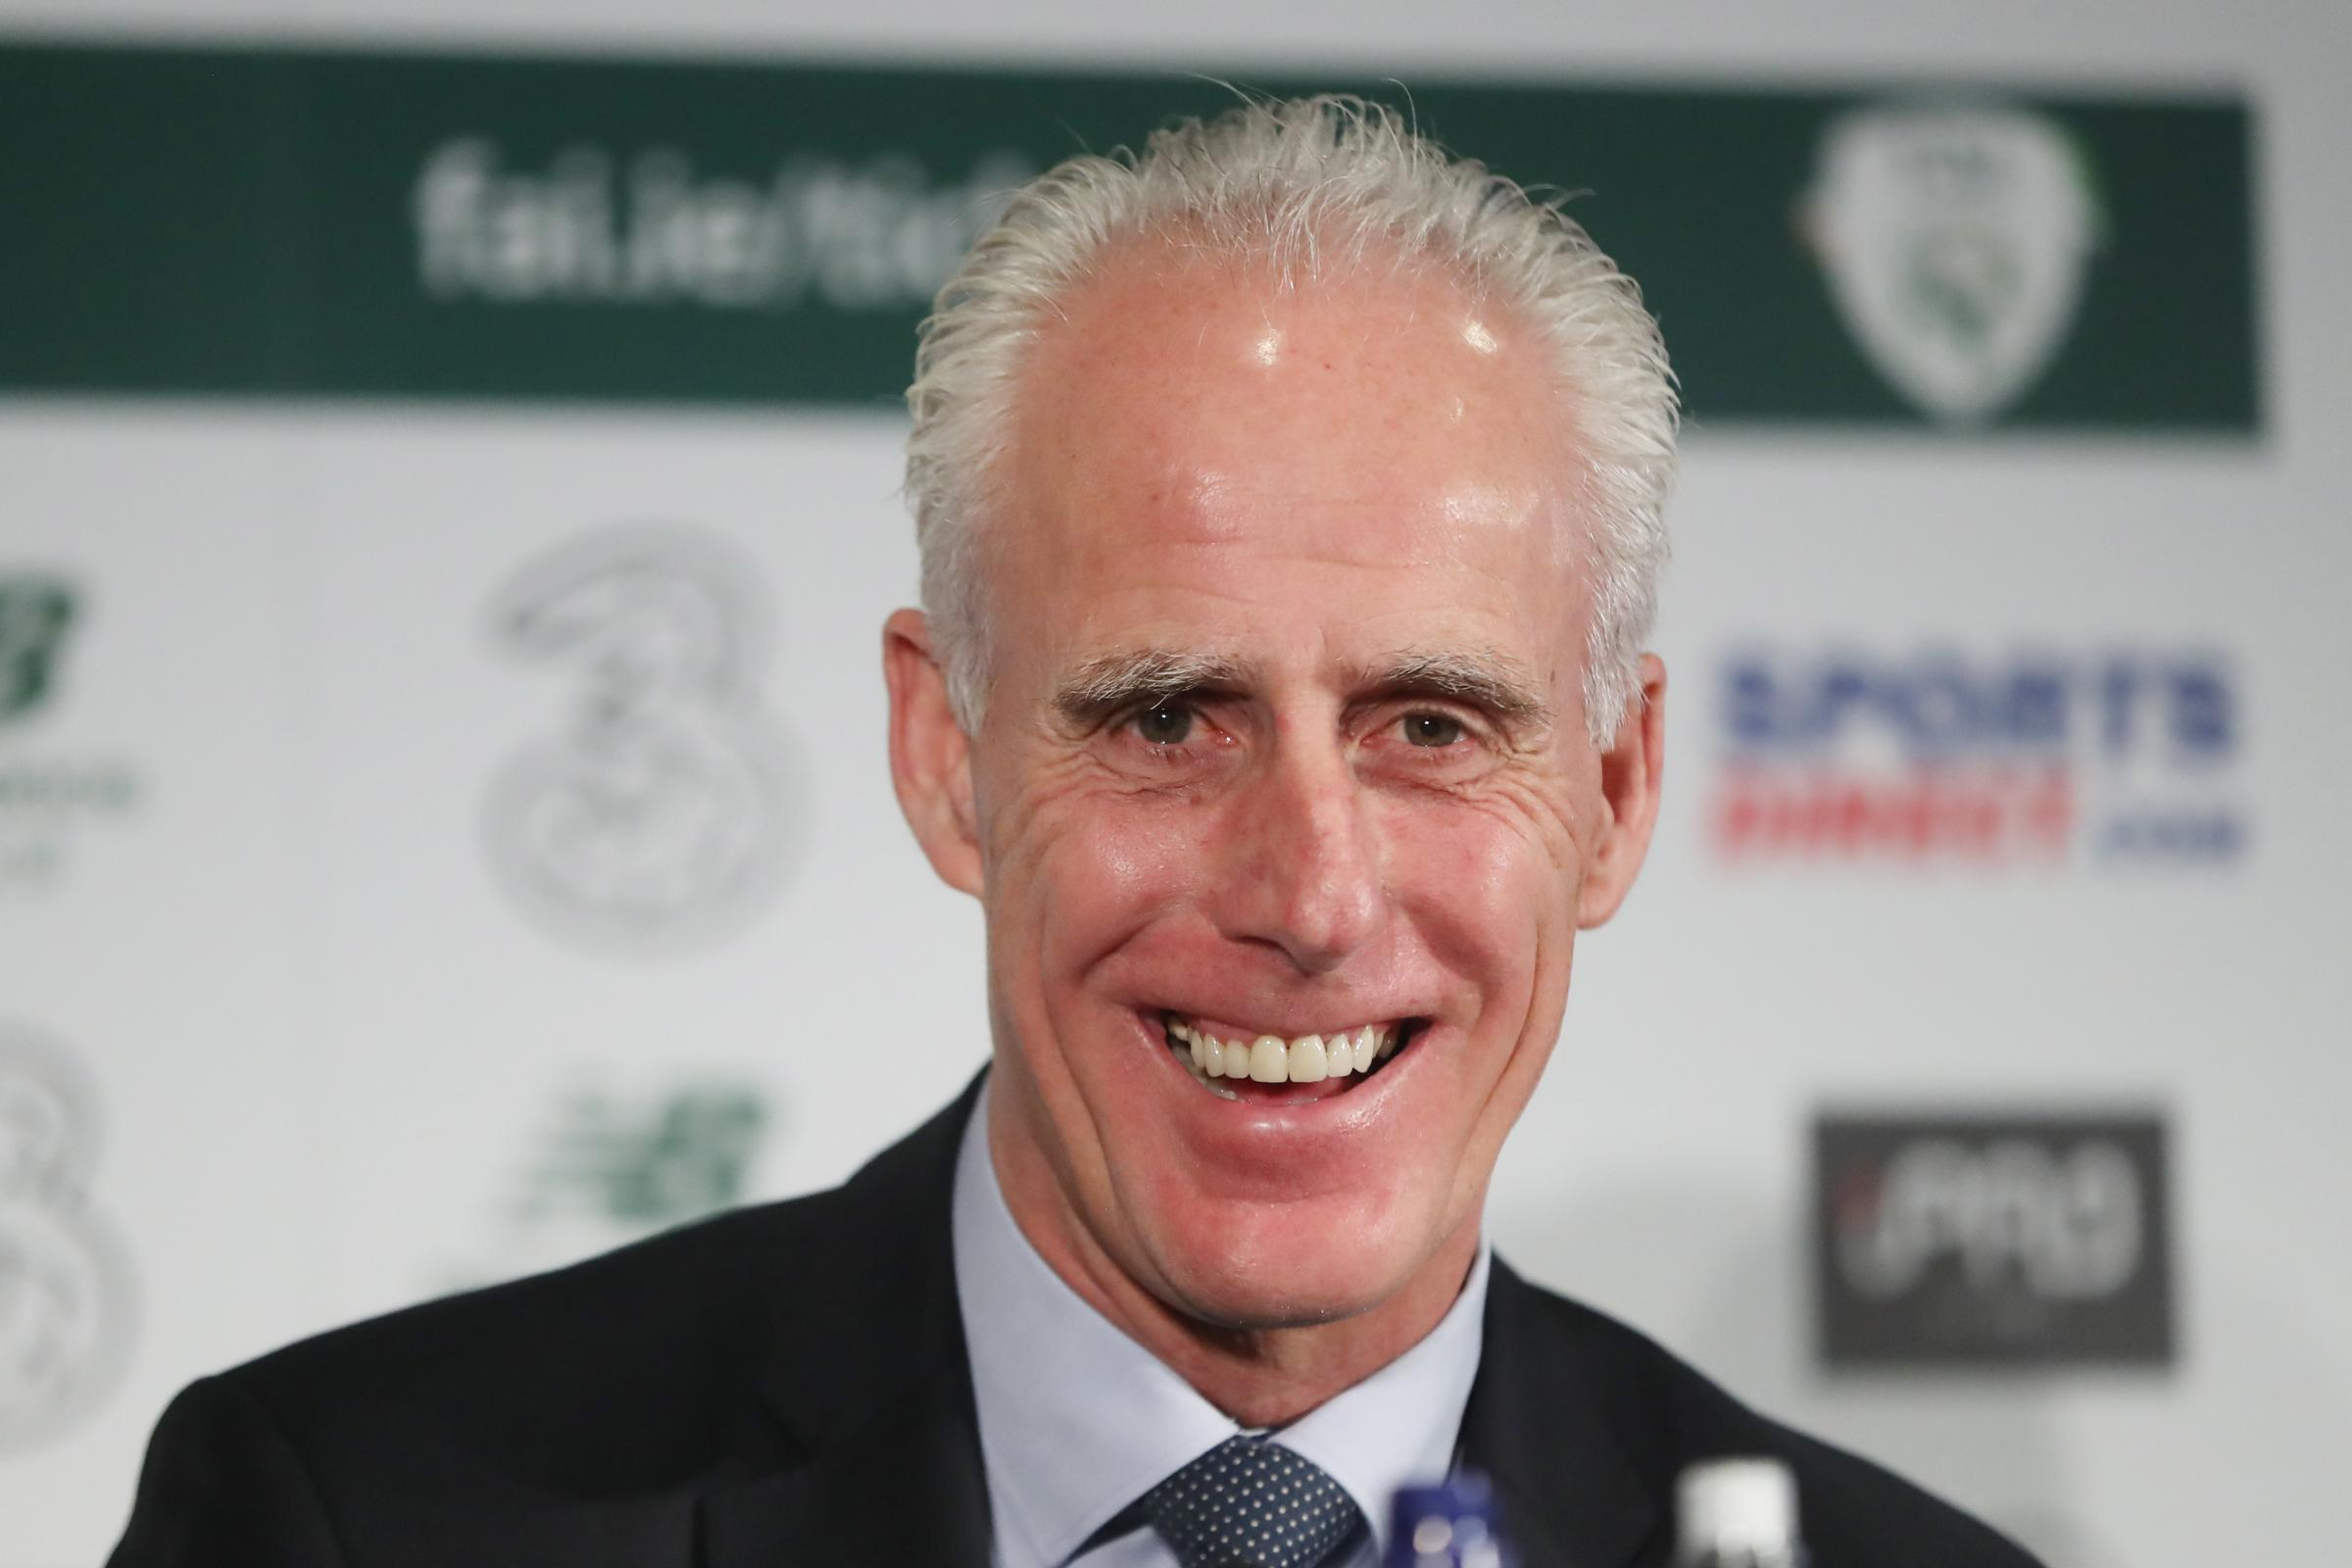 Republic of Ireland manager Mick McCarthy has finalised his squad for the Euro 2020 qualifiers against Gibraltar and Georgia